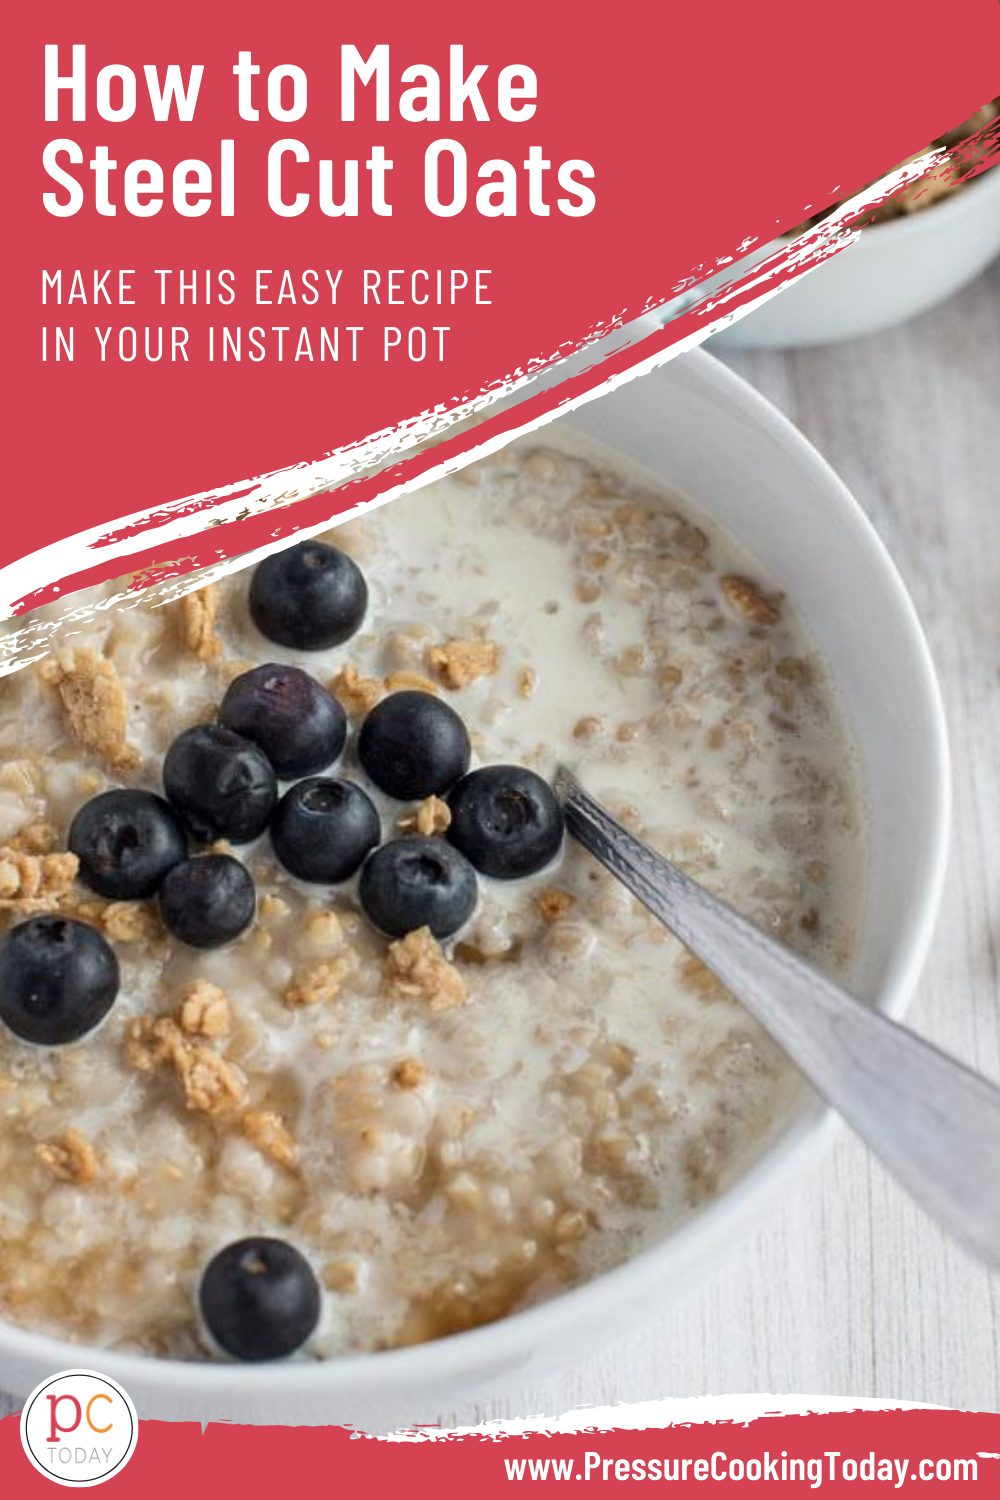 "Pinterest image promoting Instant Pot Steel Cut Oats, with a pink background with white text that reads ""make this easy recipe in your Instant Pot"" and a close-up image of steel cut oats topped with blueberries and granola via @PressureCook2da"